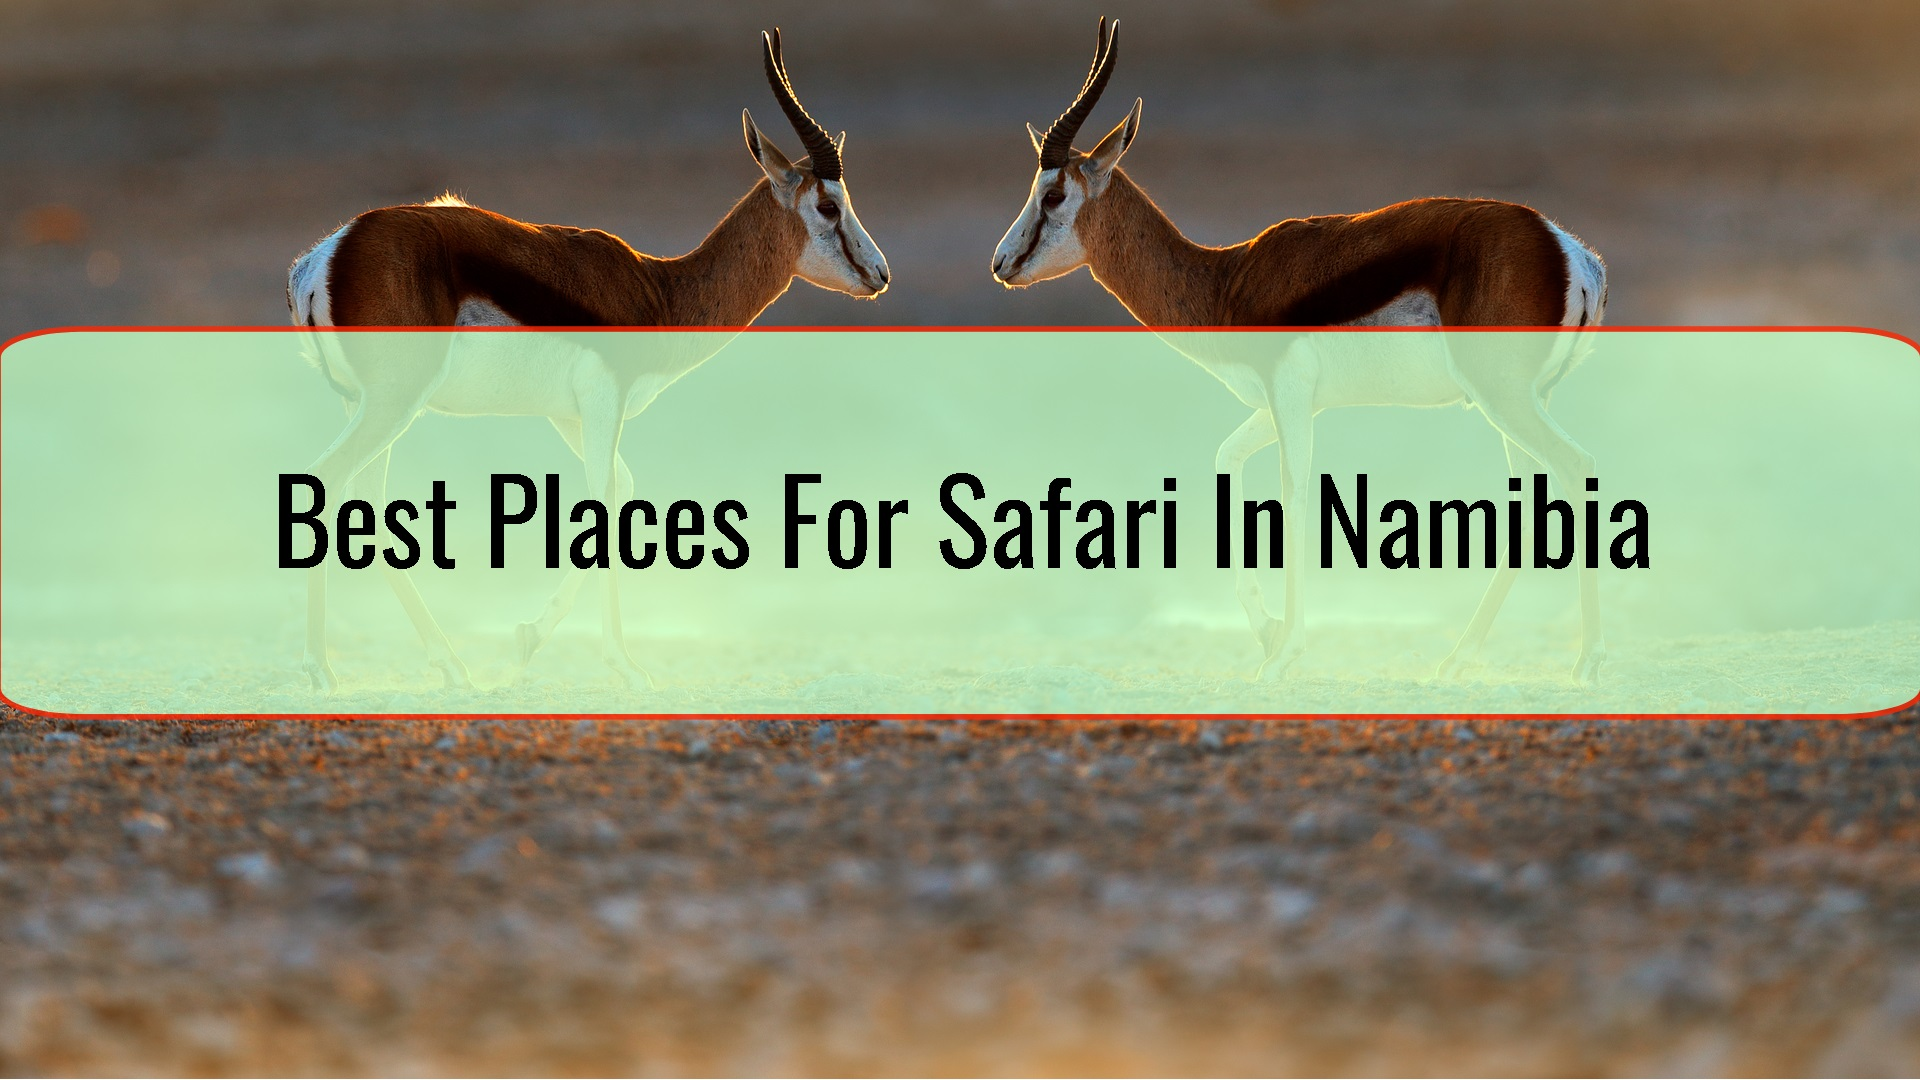 Best Places For Safari In Namibia